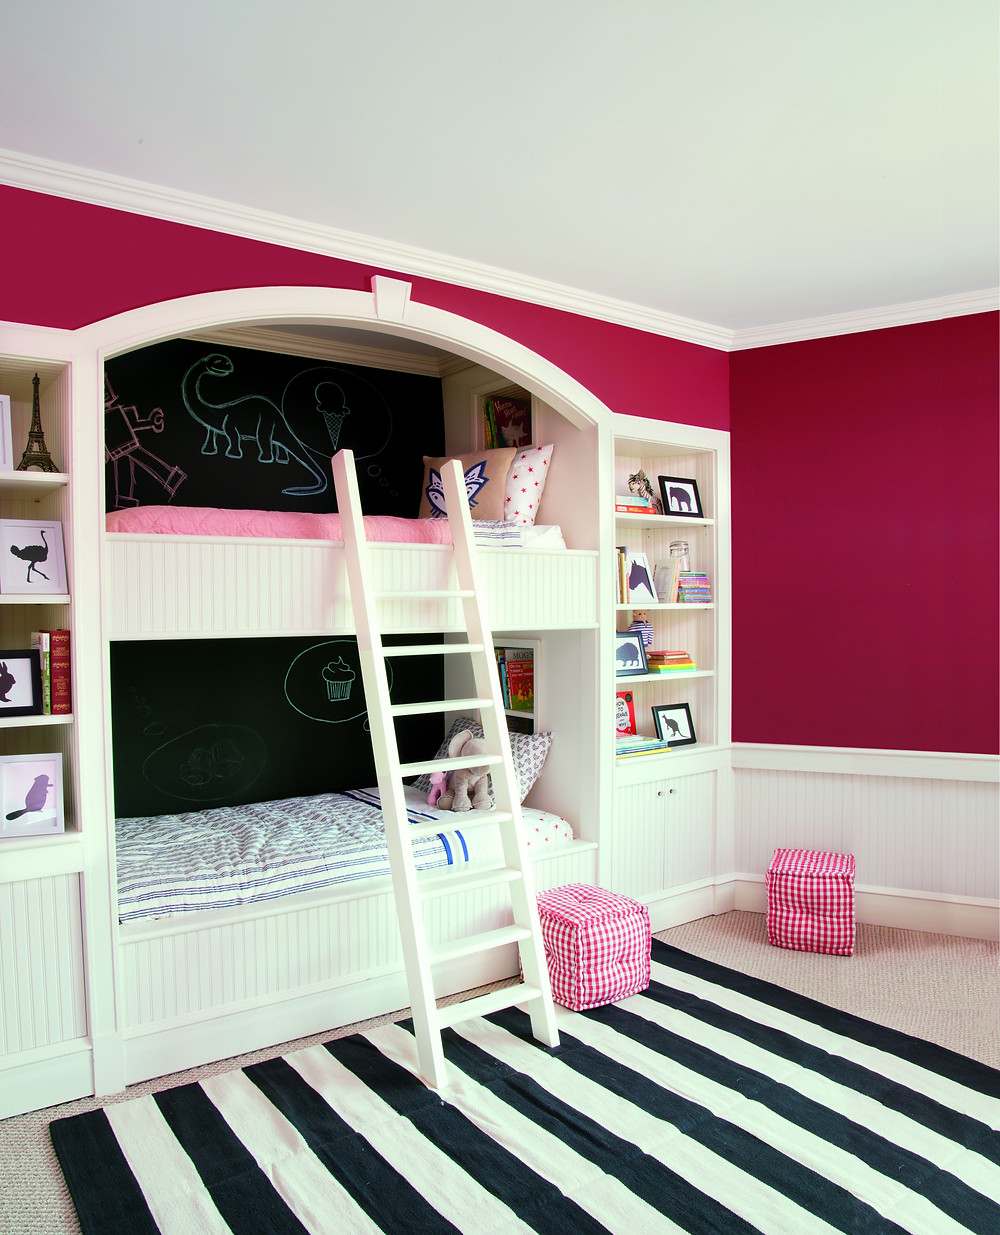 Ideas for Painting Beautiful Accent Walls Magenta Pink Kids Room at SF Dogpatch Mission Hill Potrero Hill Paint Store